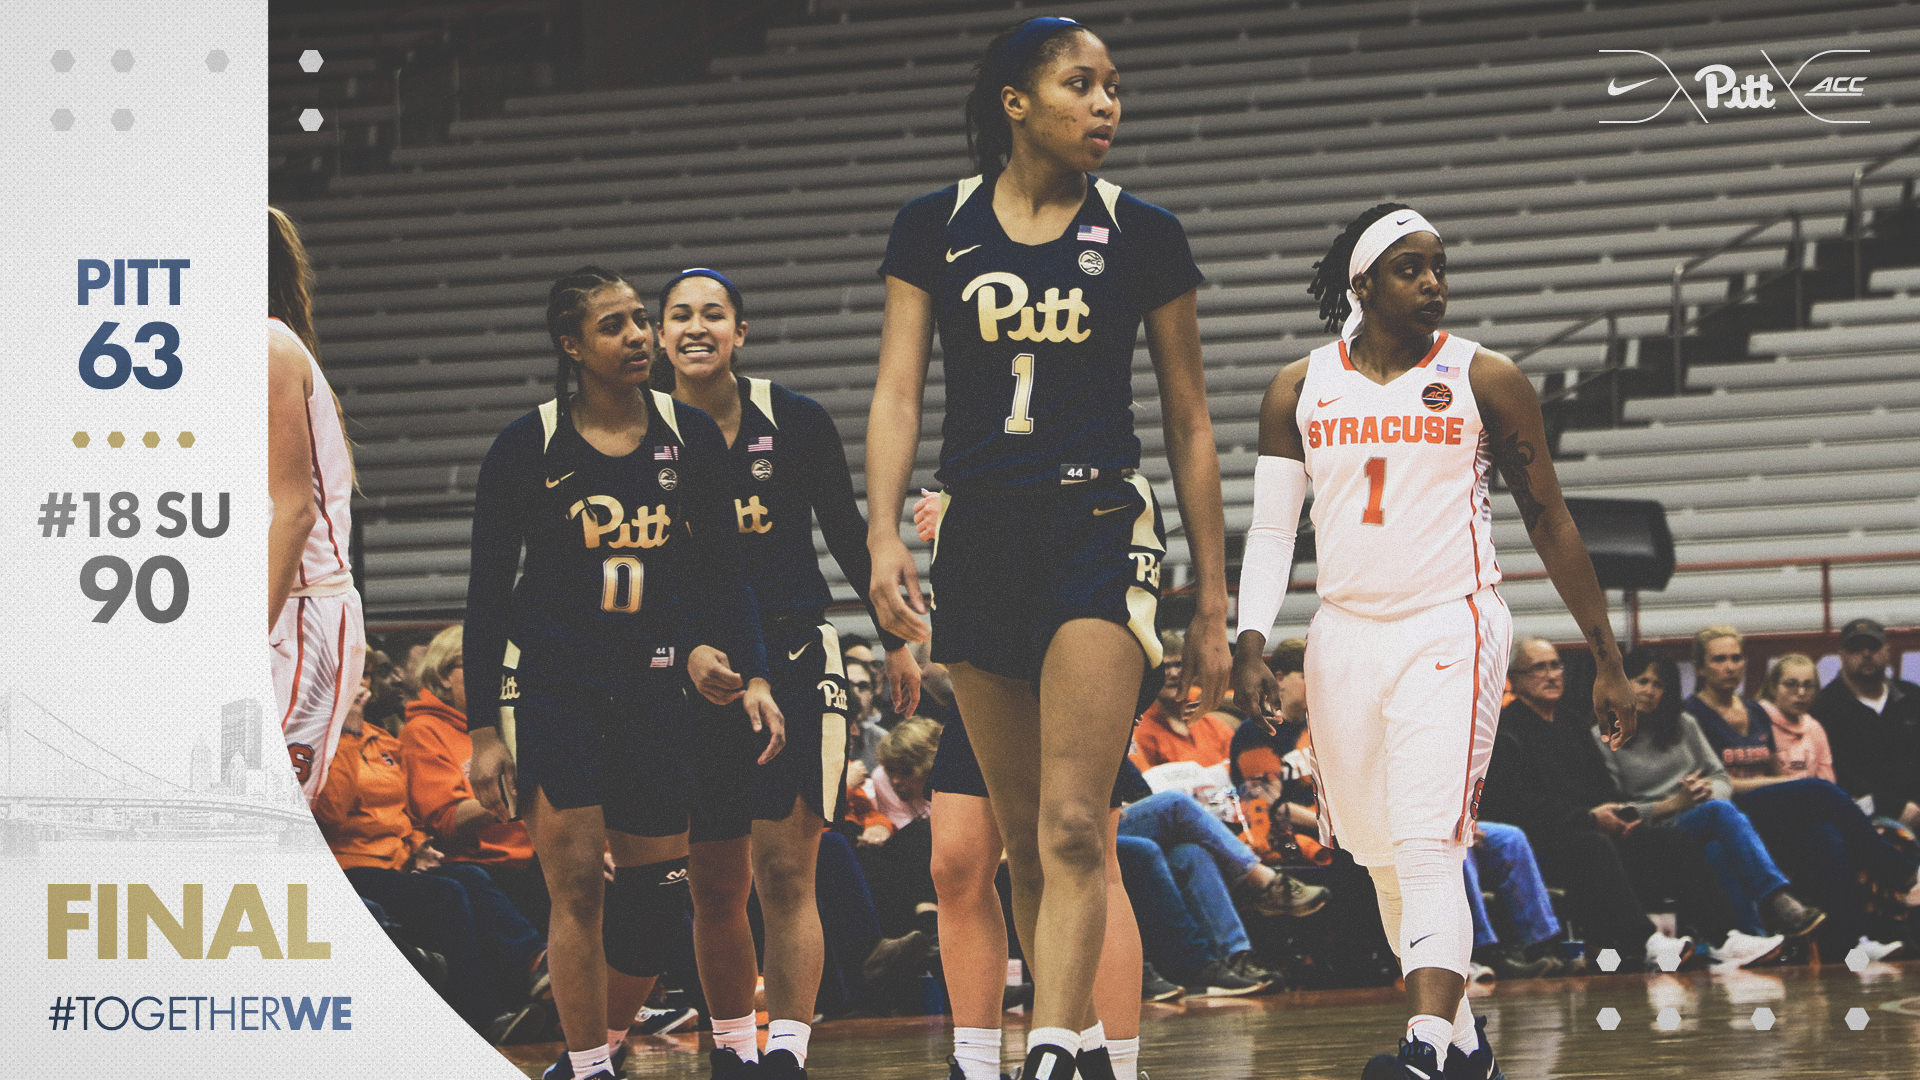 brand new 7e251 9f1f8 Panthers Fall On The Road To #18 Syracuse - Pitt Panthers #H2P